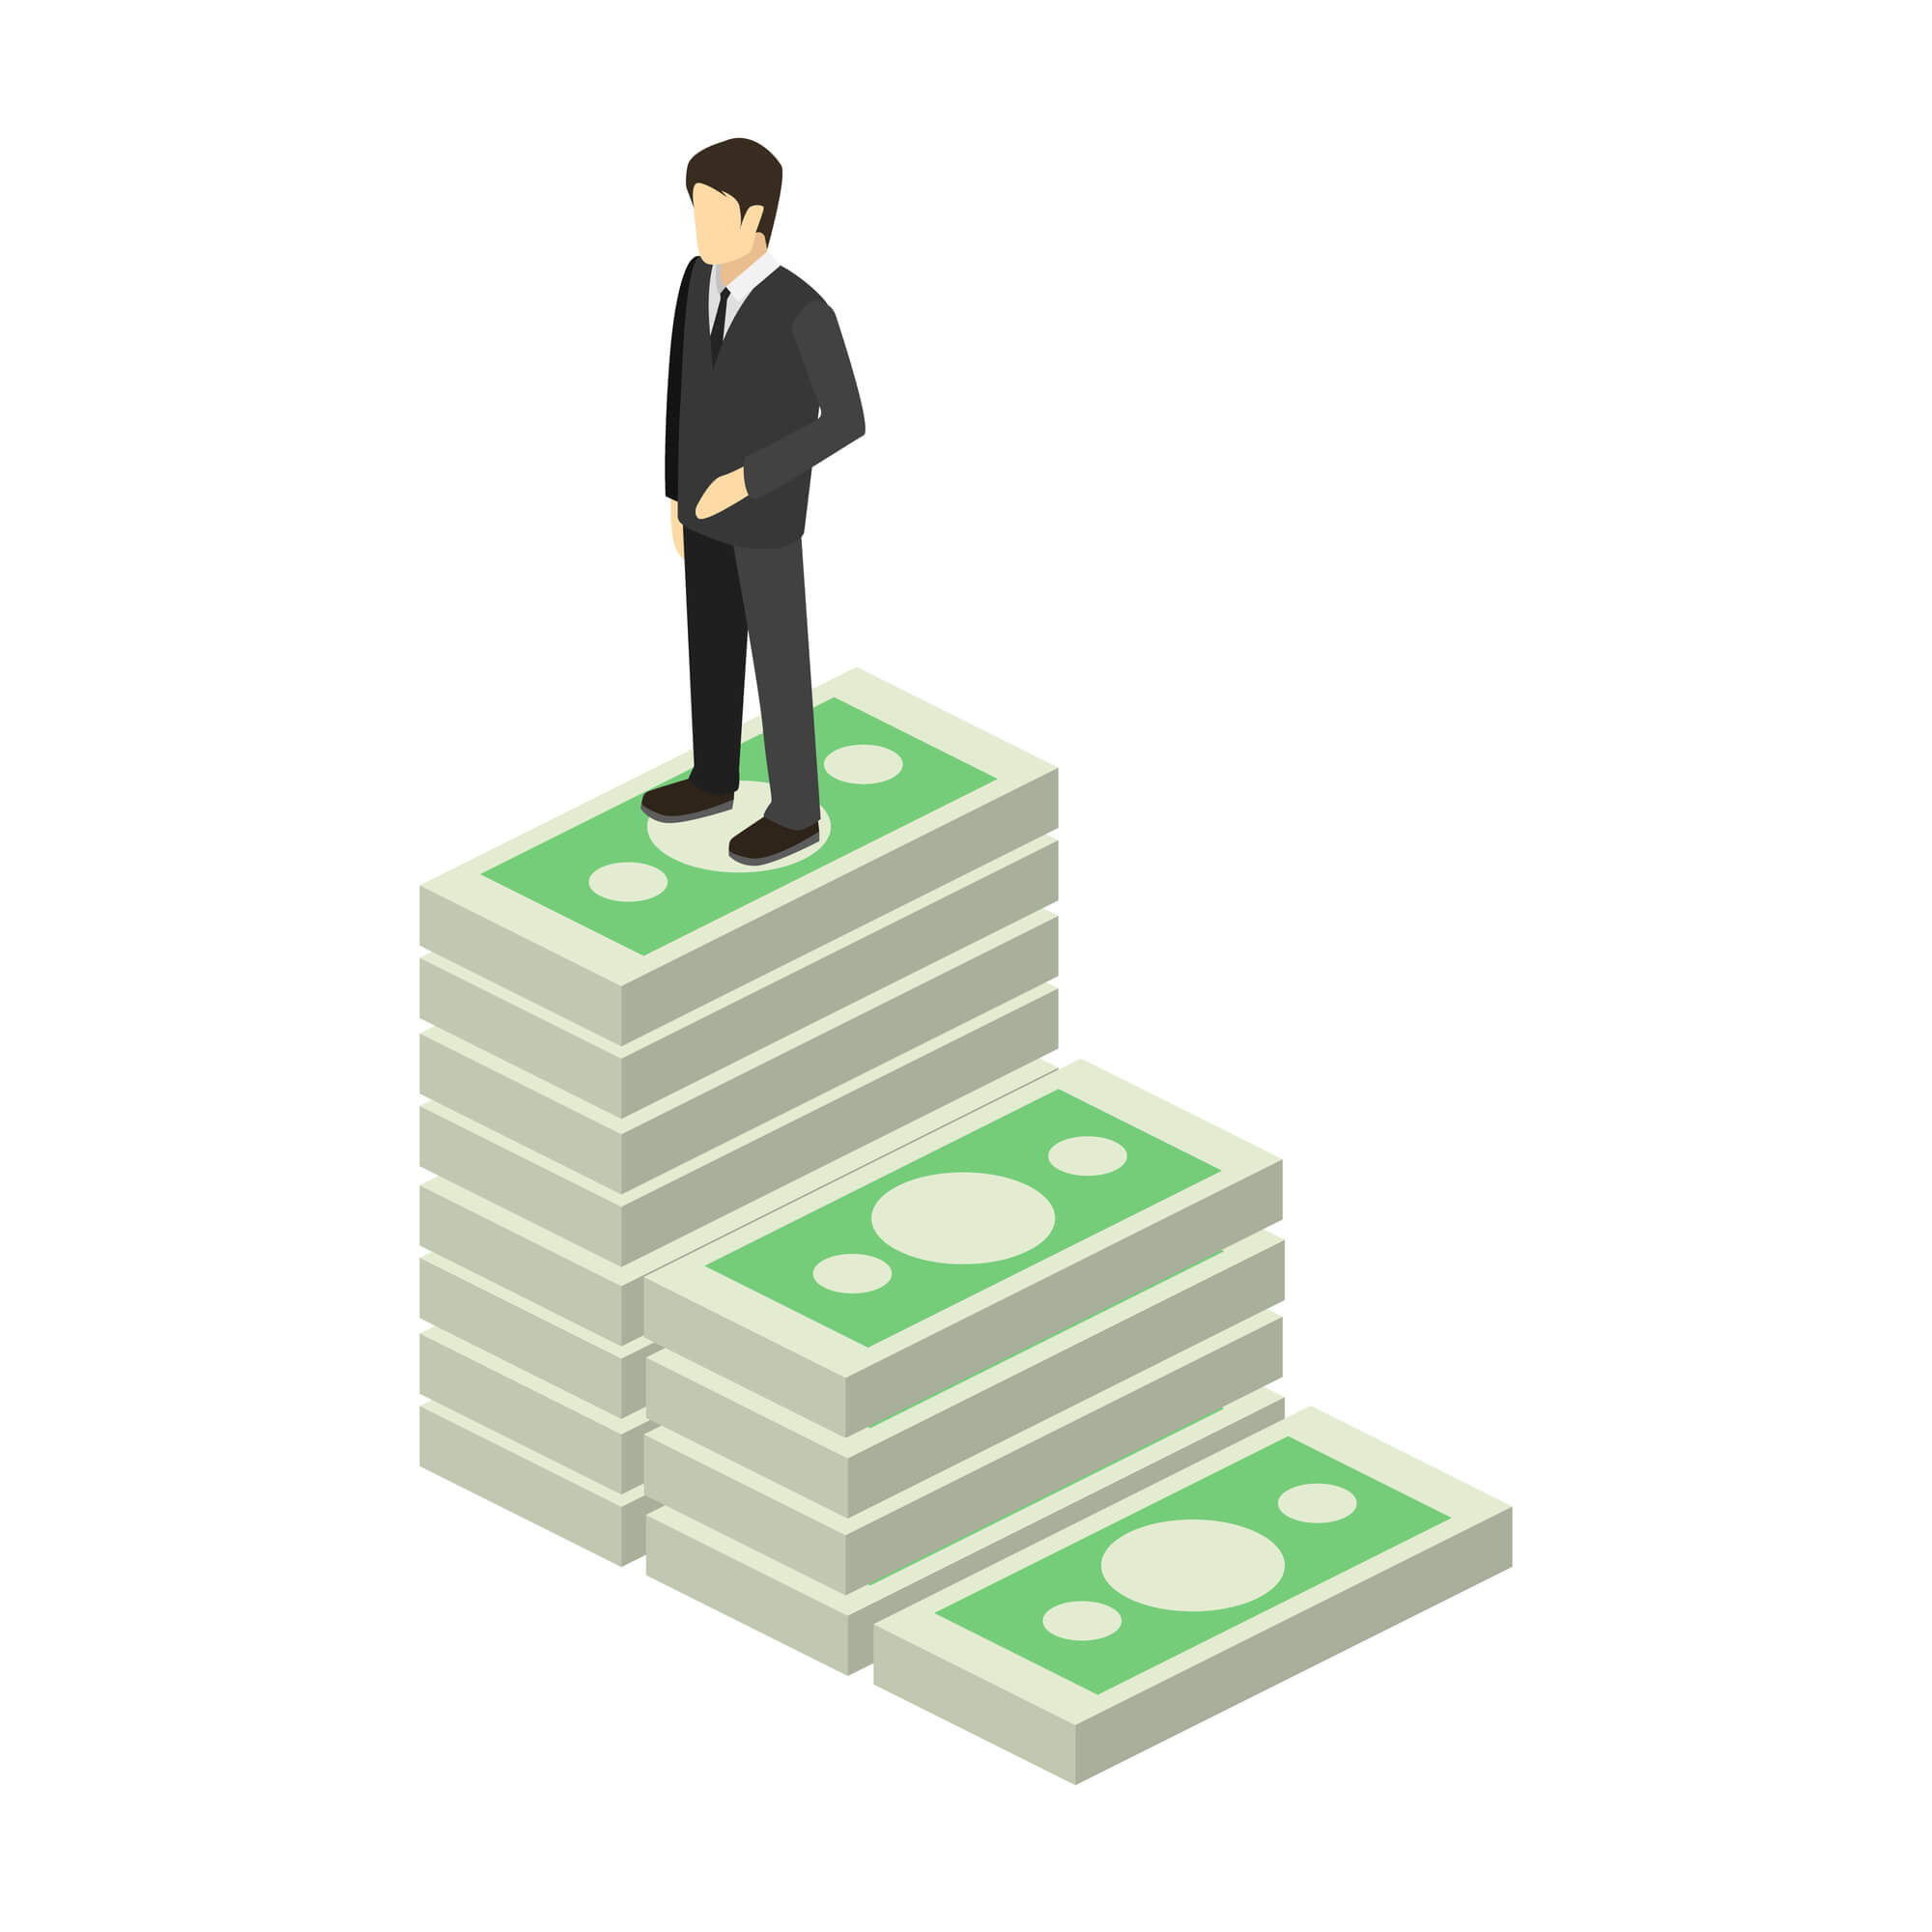 graphic of man standing on stairs made of money